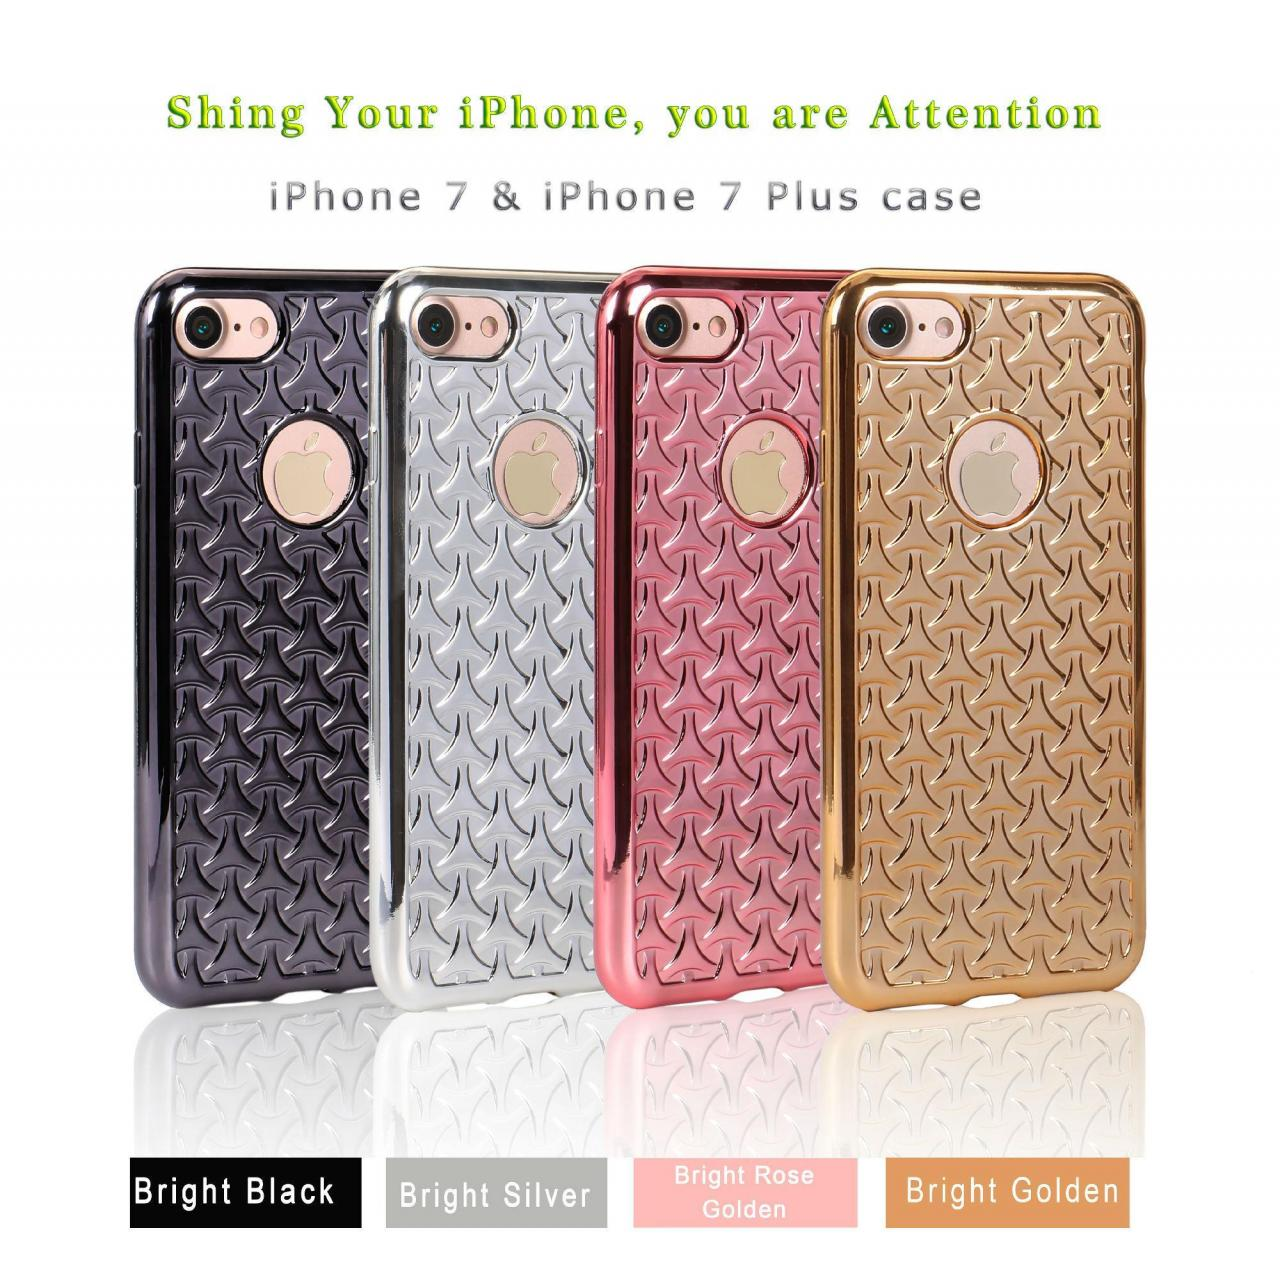 iPhone 7 (7pro) Case/Triangle electroplated iphone 7 case